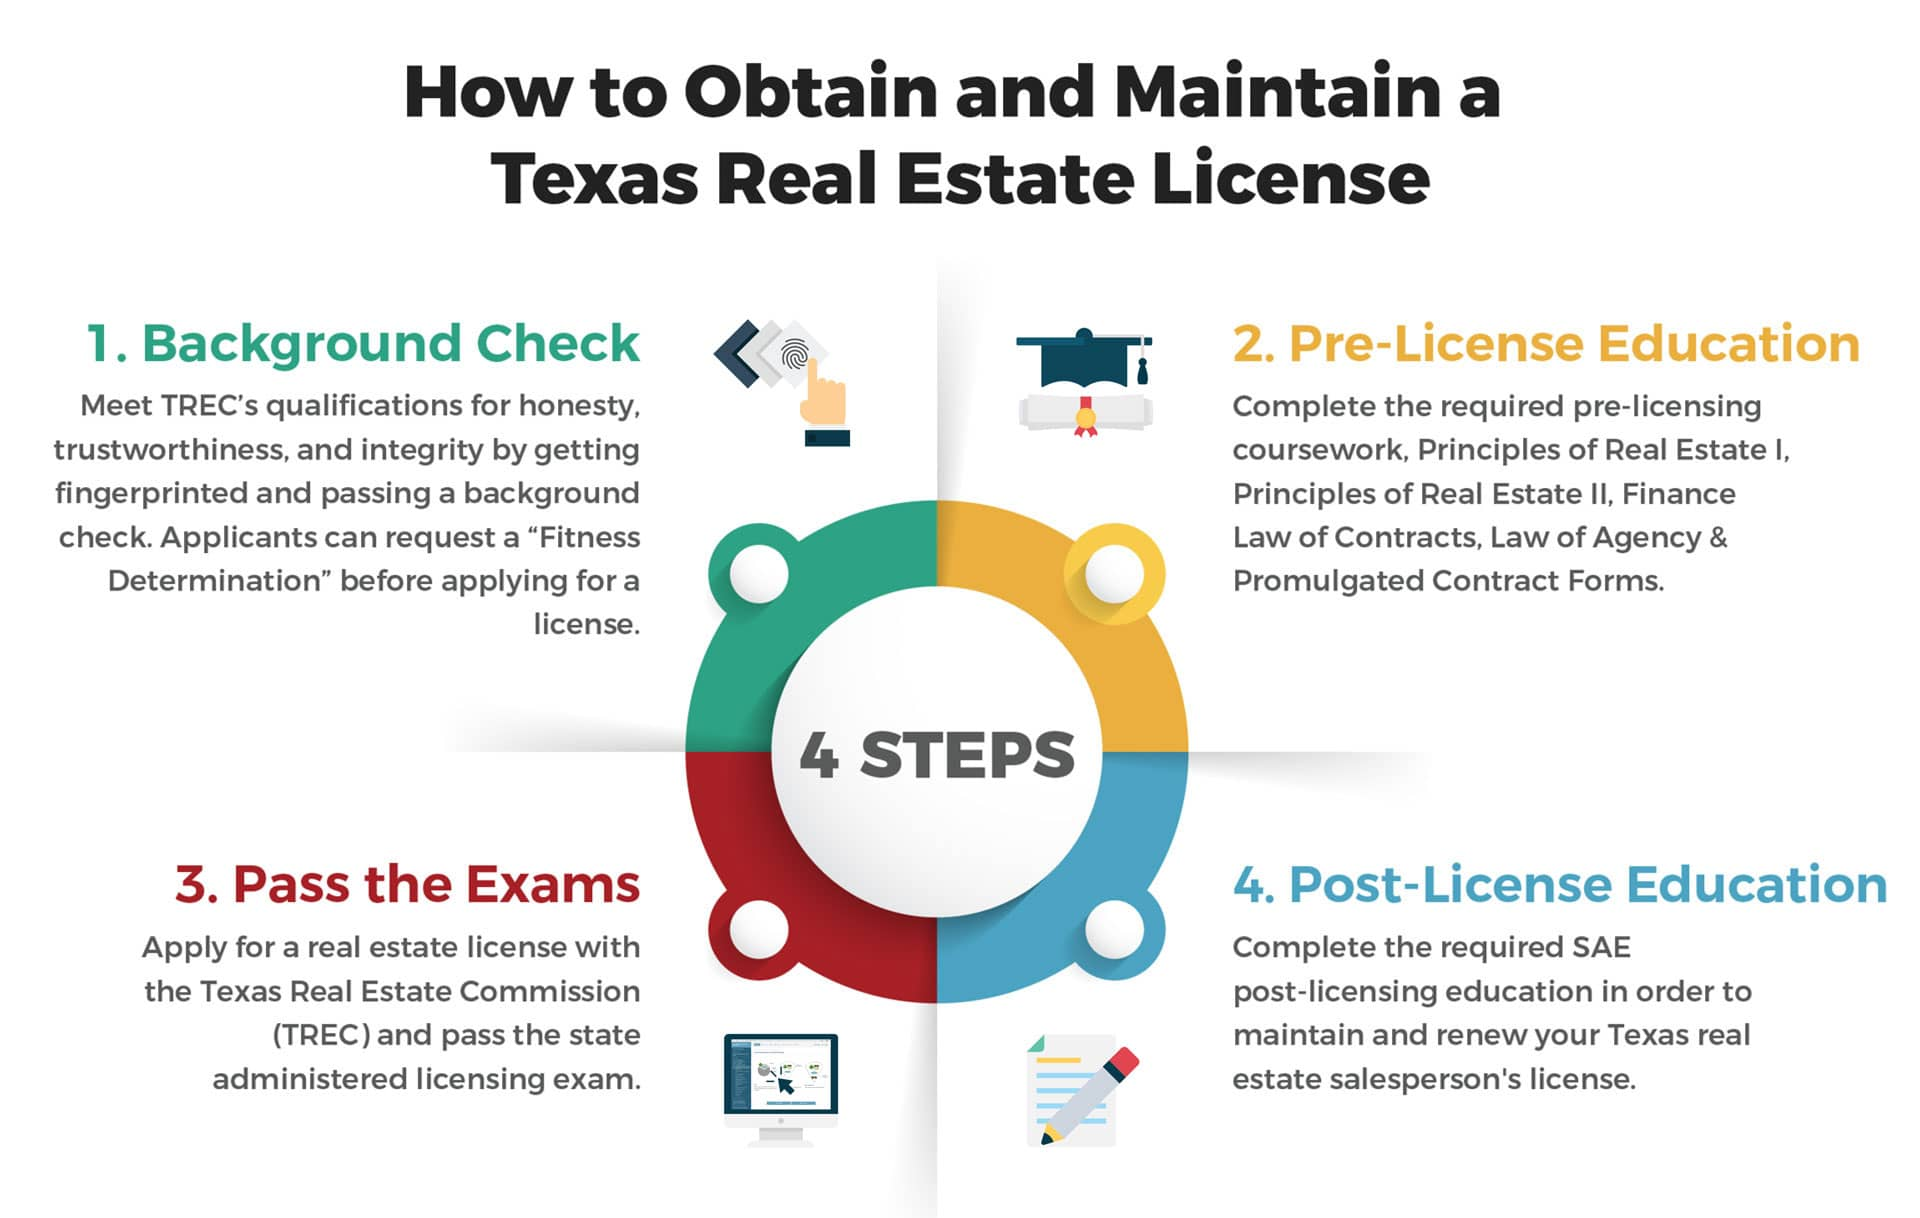 How to Get a Texas Real Estate License